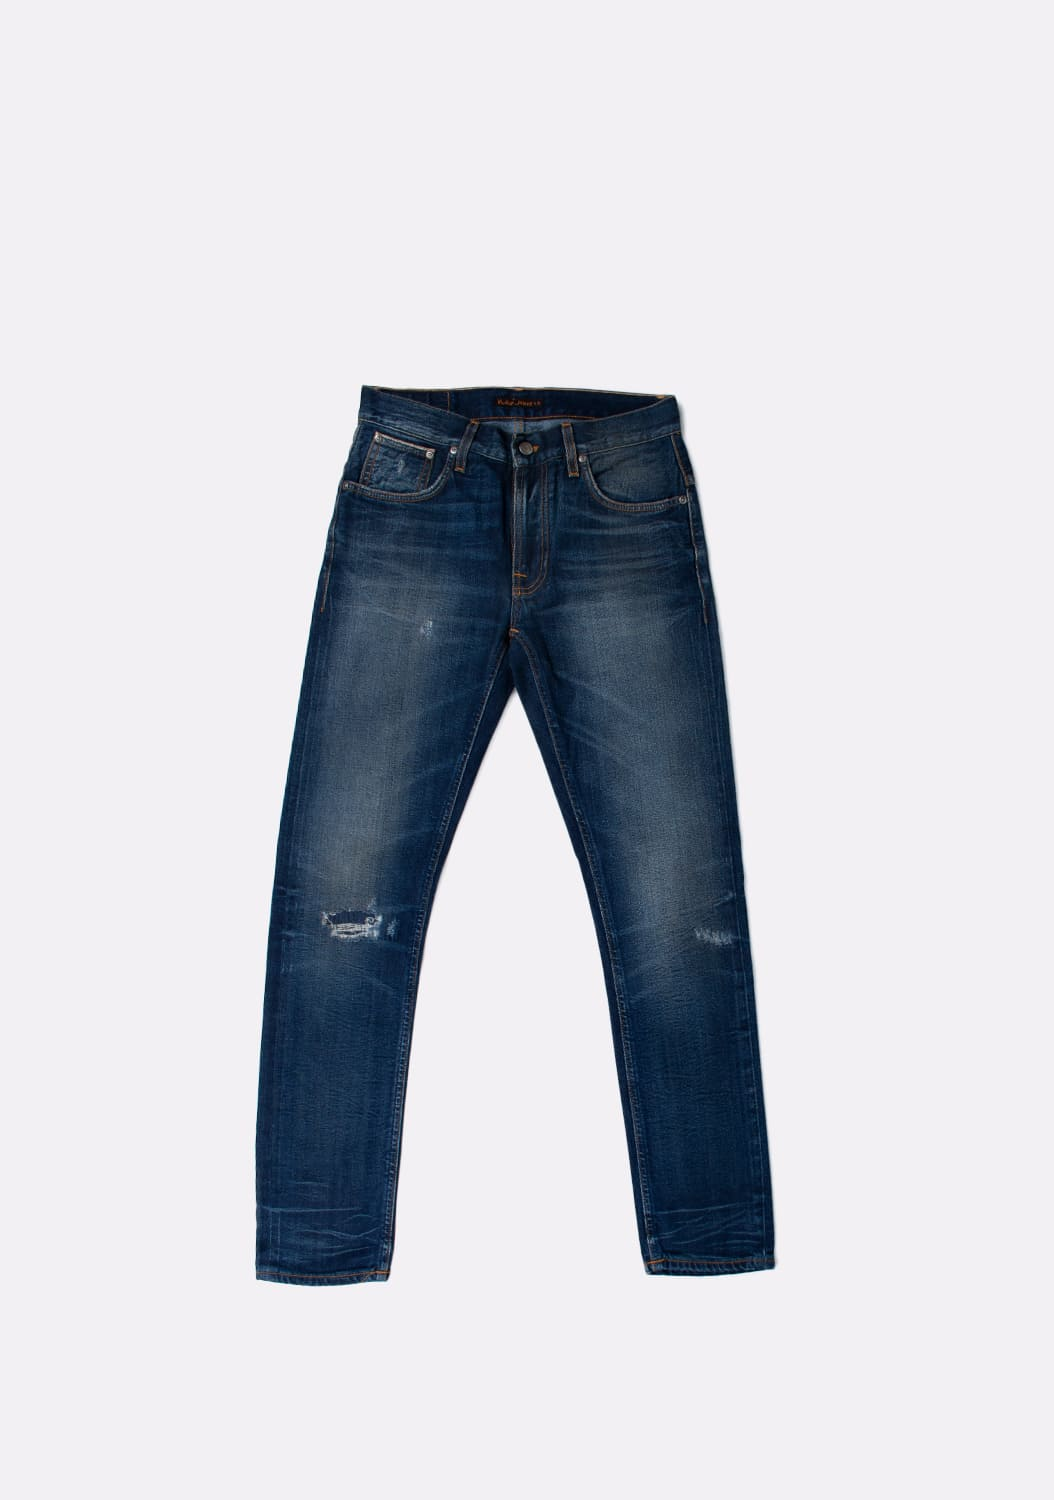 Nudie-Thin-Finn-Jonas-Replica-Selvage-Selvedge-melyni-dzinsai-dydis-31-32 (2)